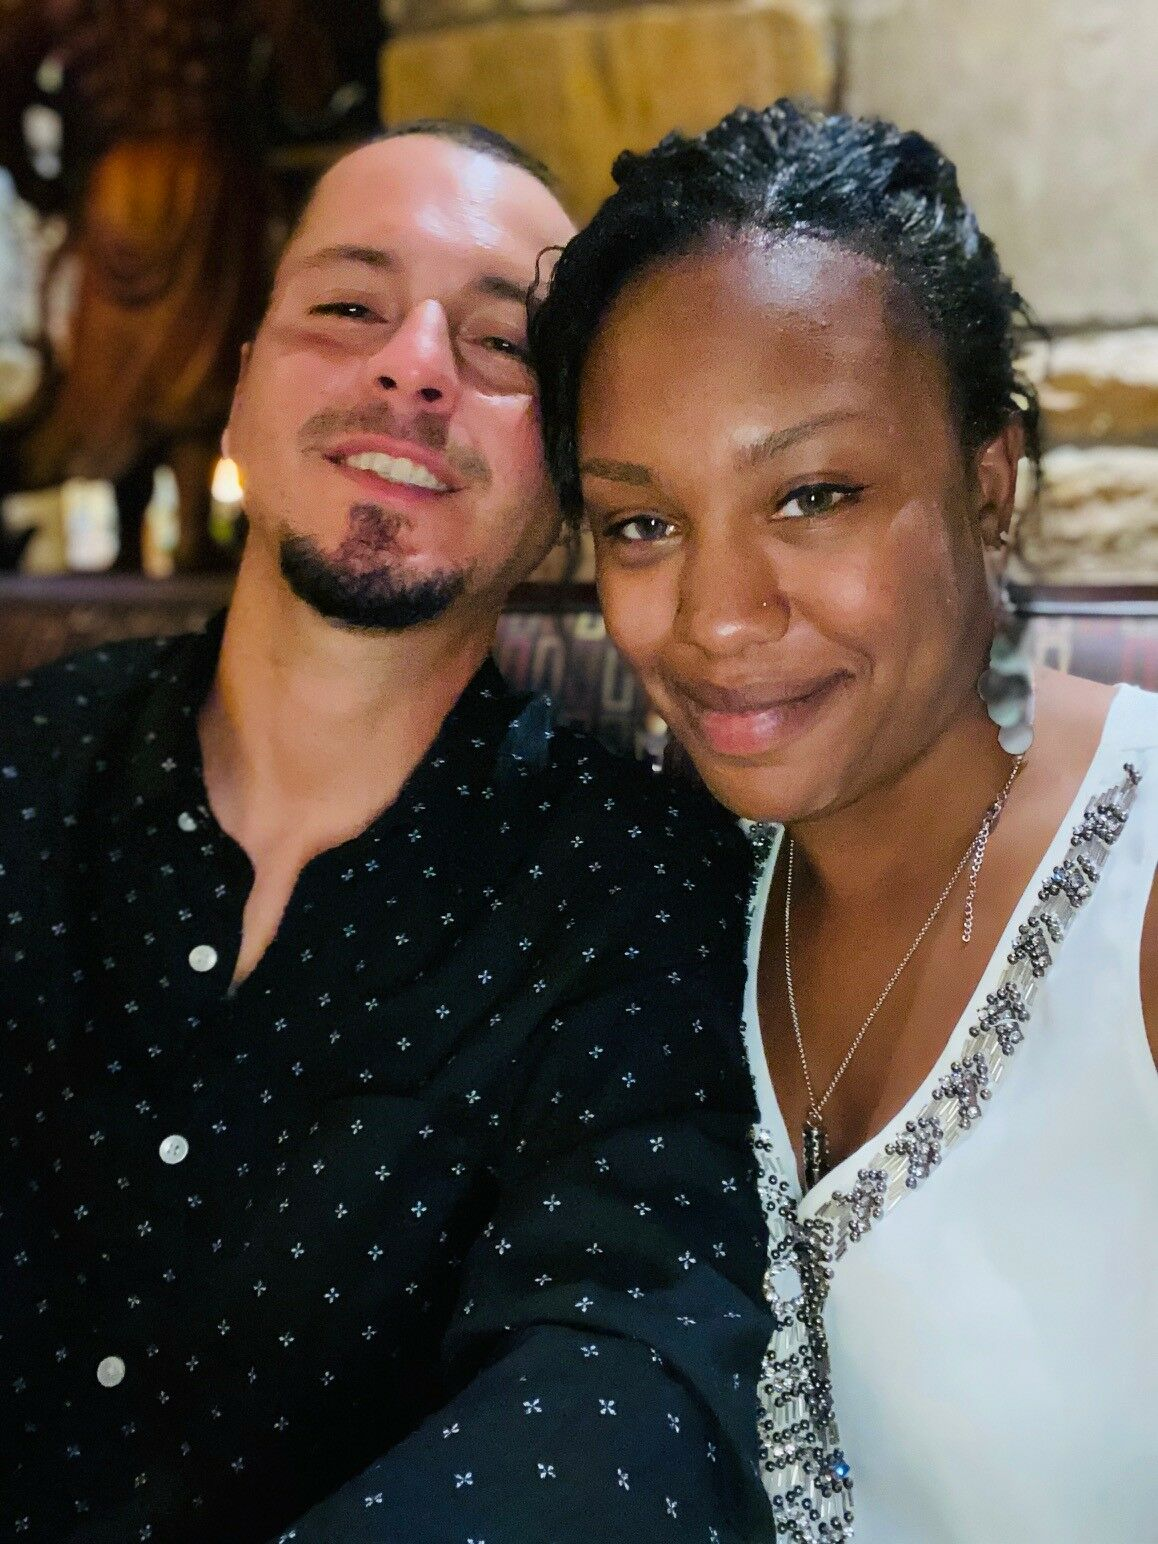 Image 1 of Shana and Marc